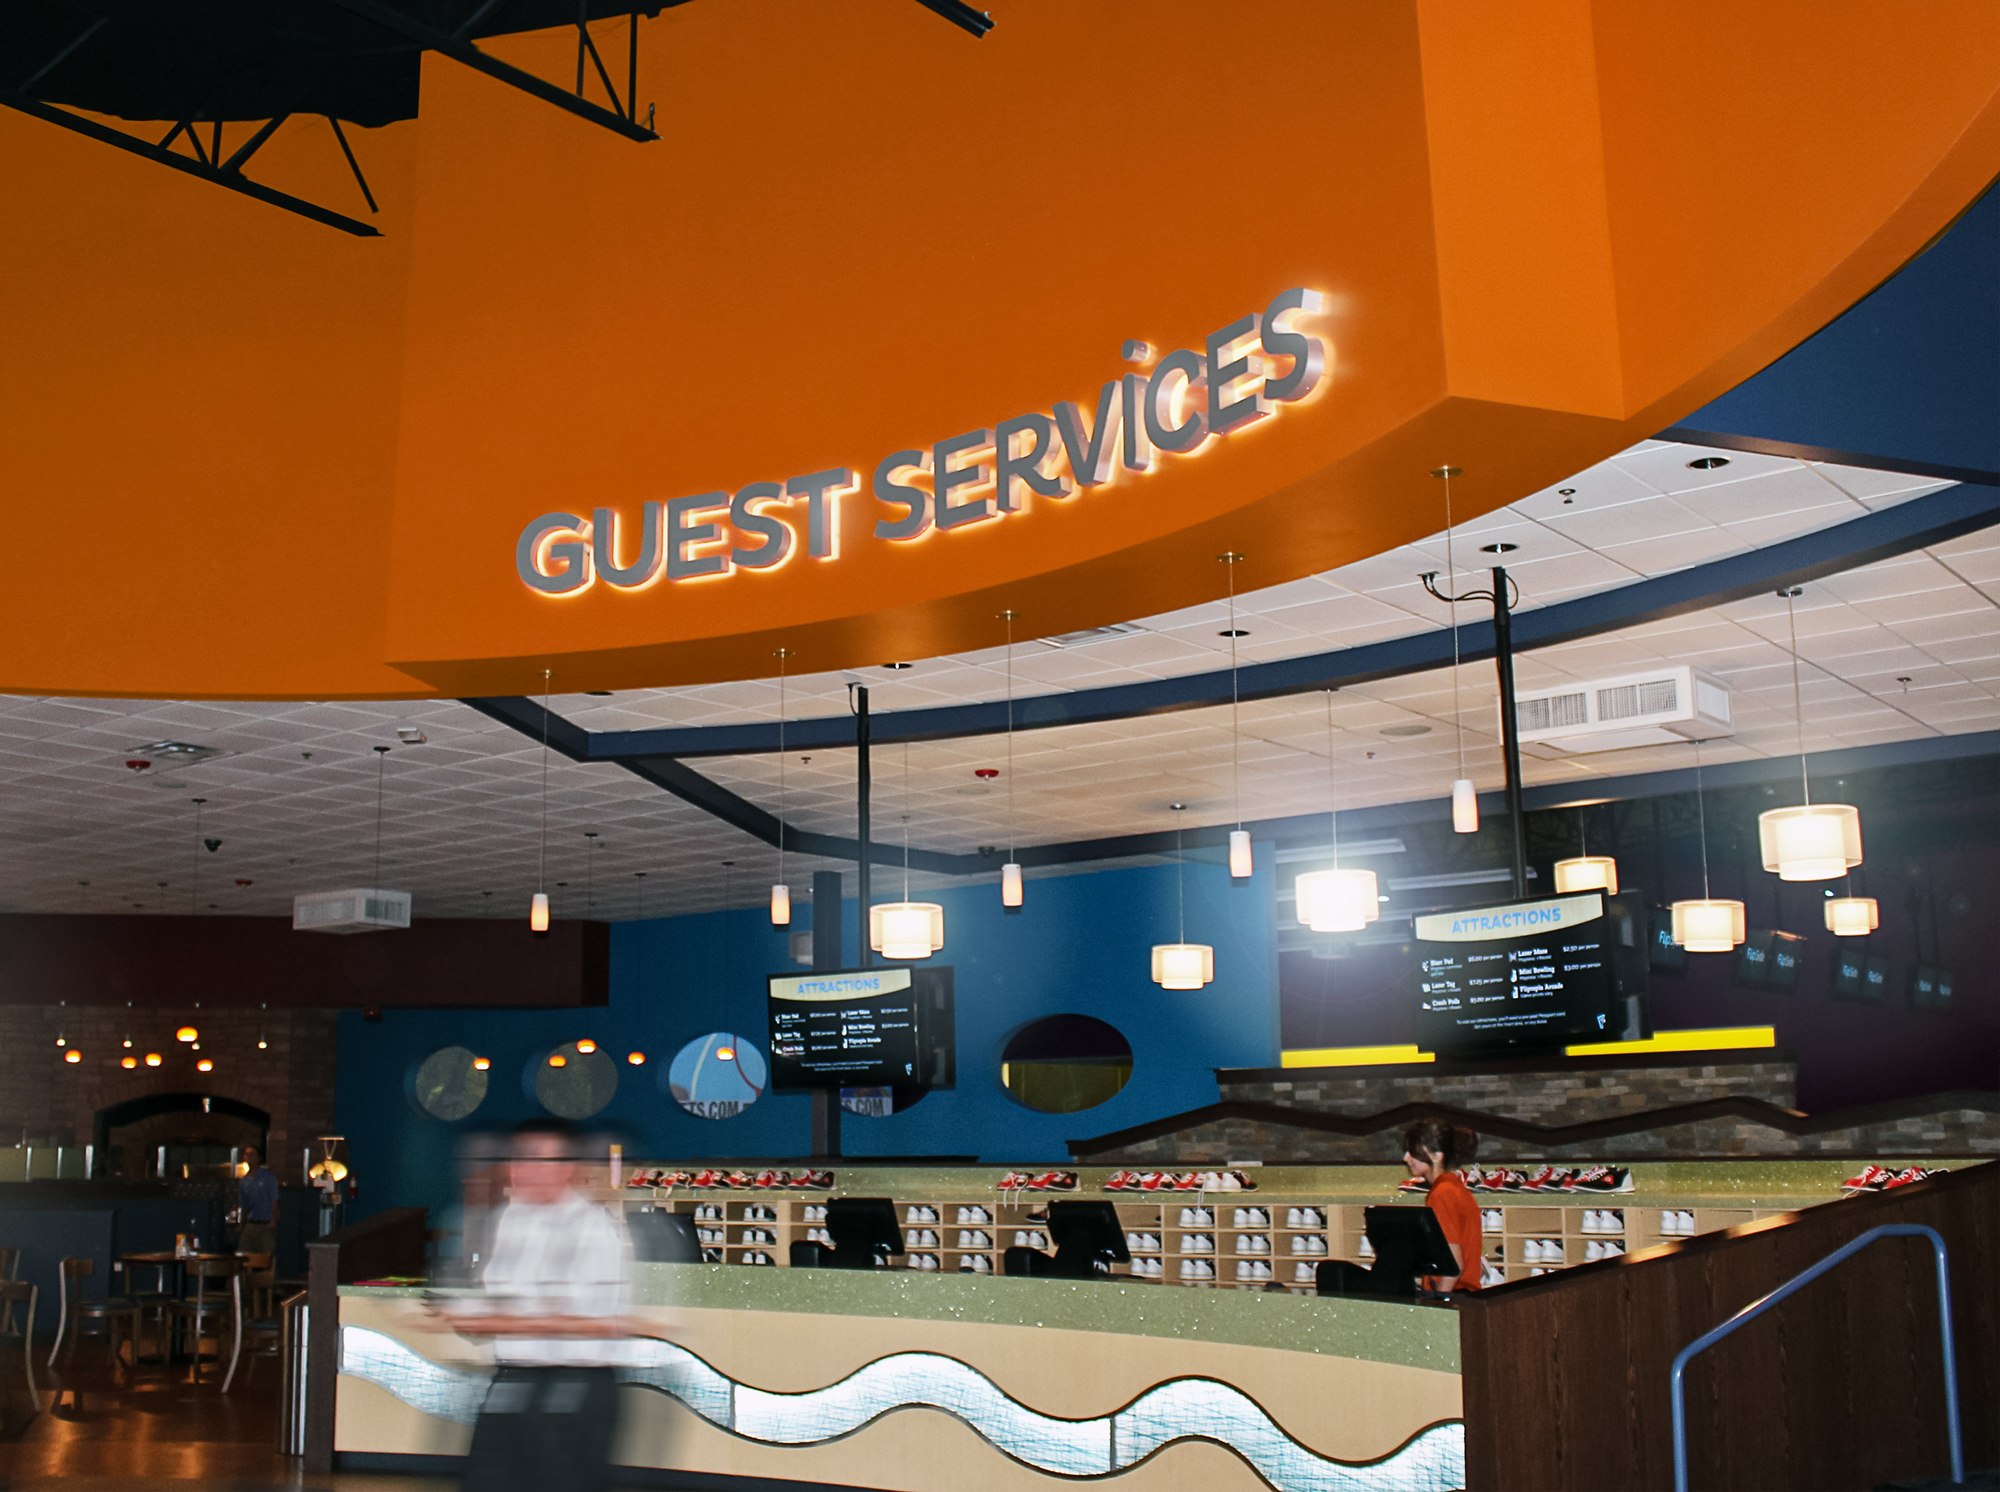 A halo-illuminated Guest Services letterset.